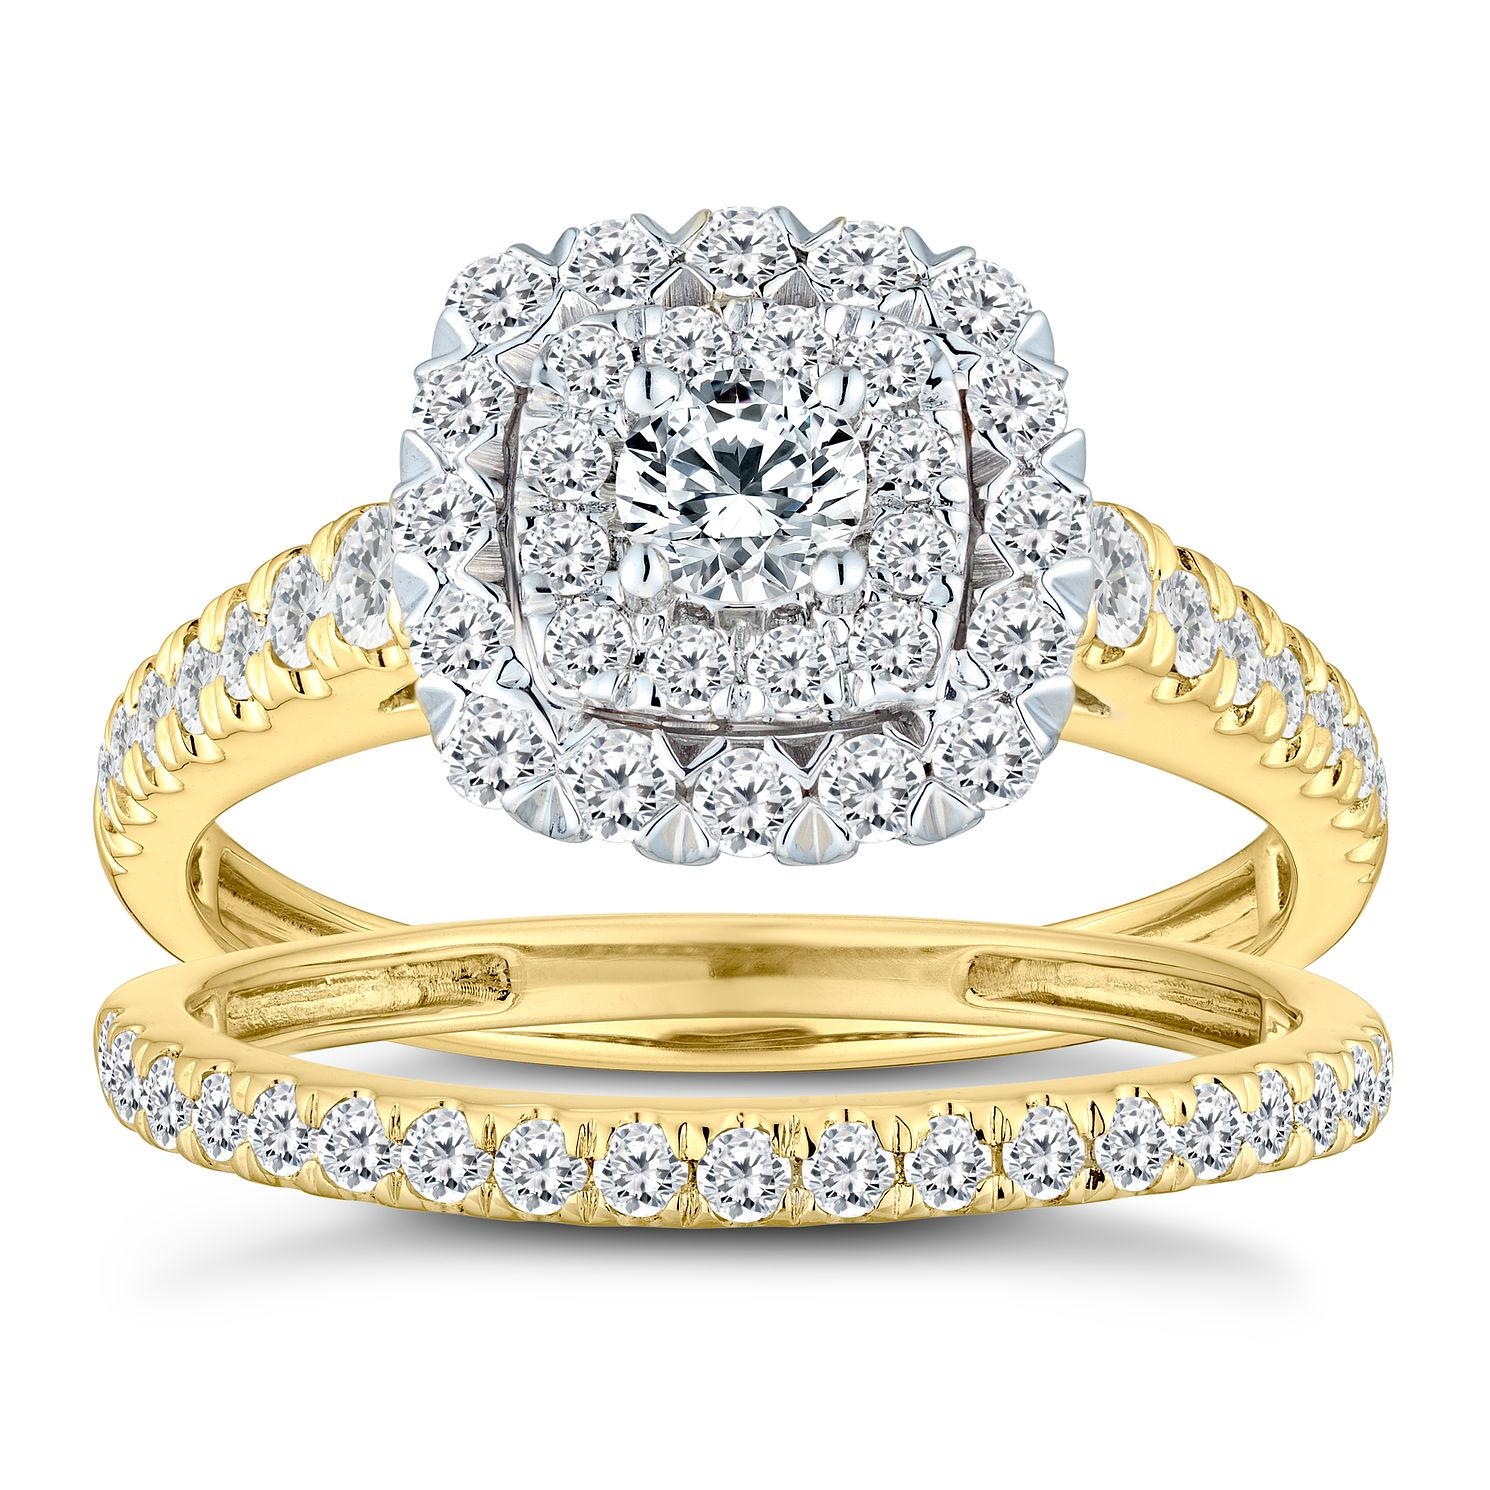 18ct Yellow Gold 1ct Diamond Cushion Bridal Ring Set - Product number 2828944